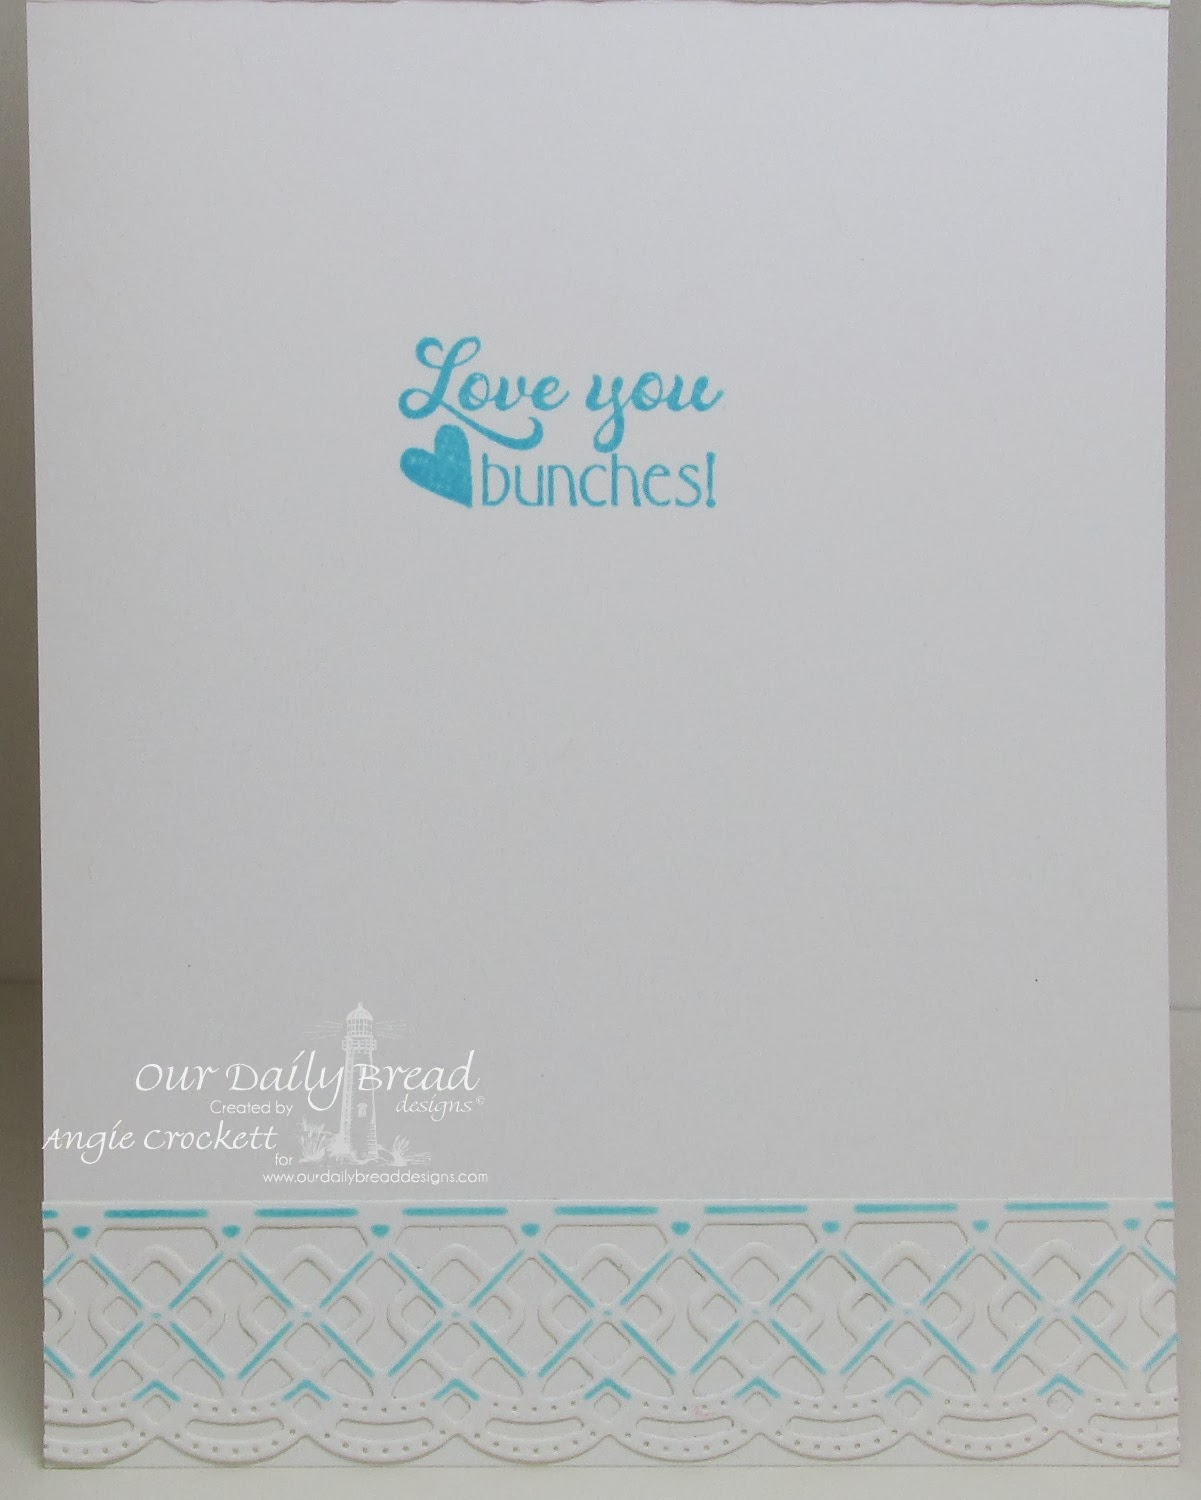 ODBD Love you Bunches, ODBD Custom Beautiful Borders Die Set, Card Designer Angie Crockett